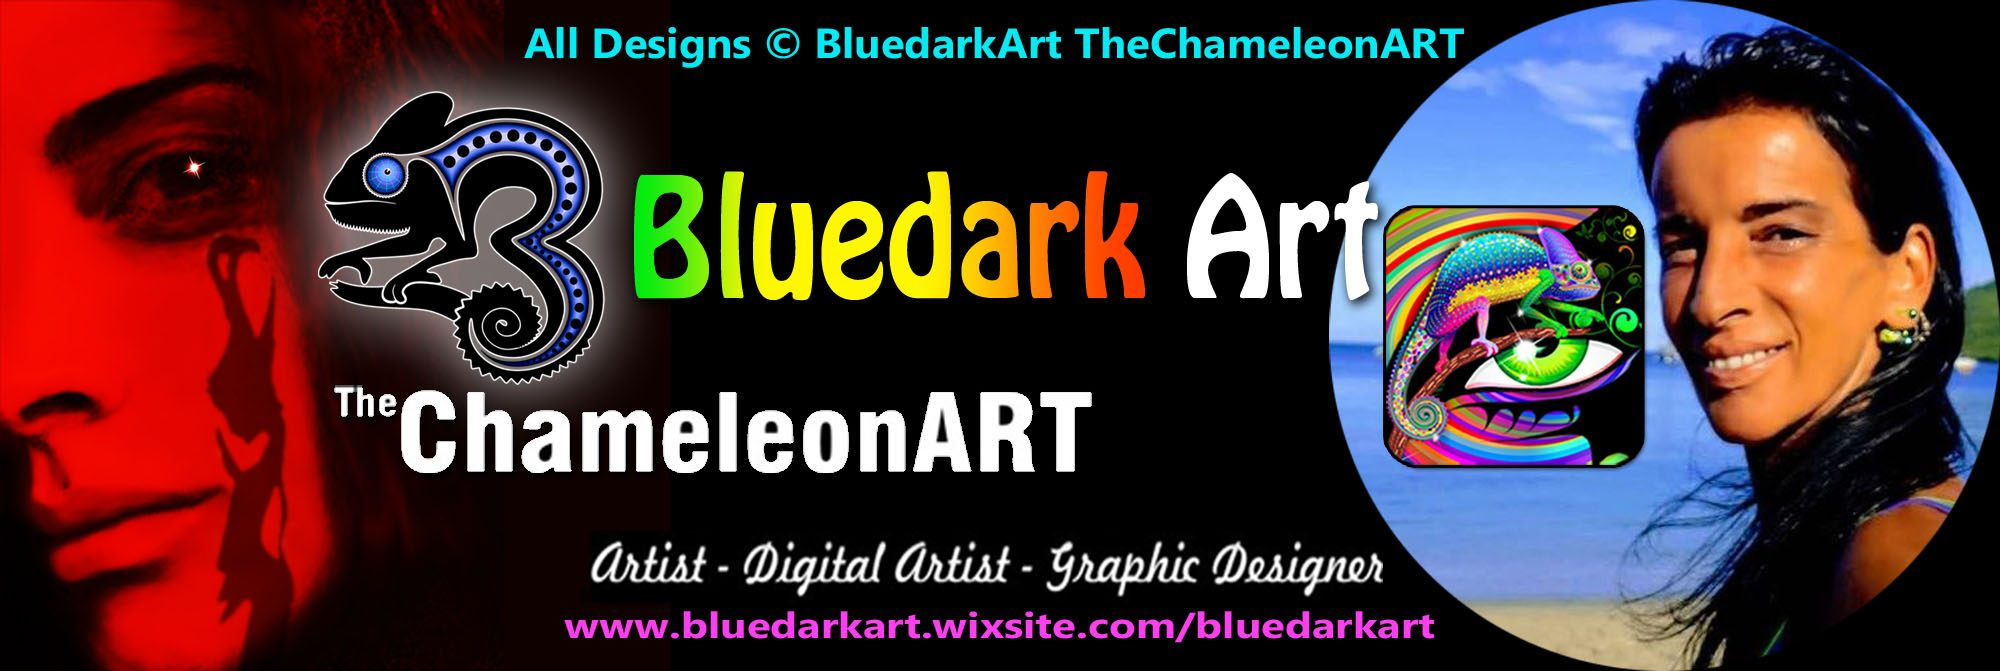 The Chameleon ART BluedarkArt Designer